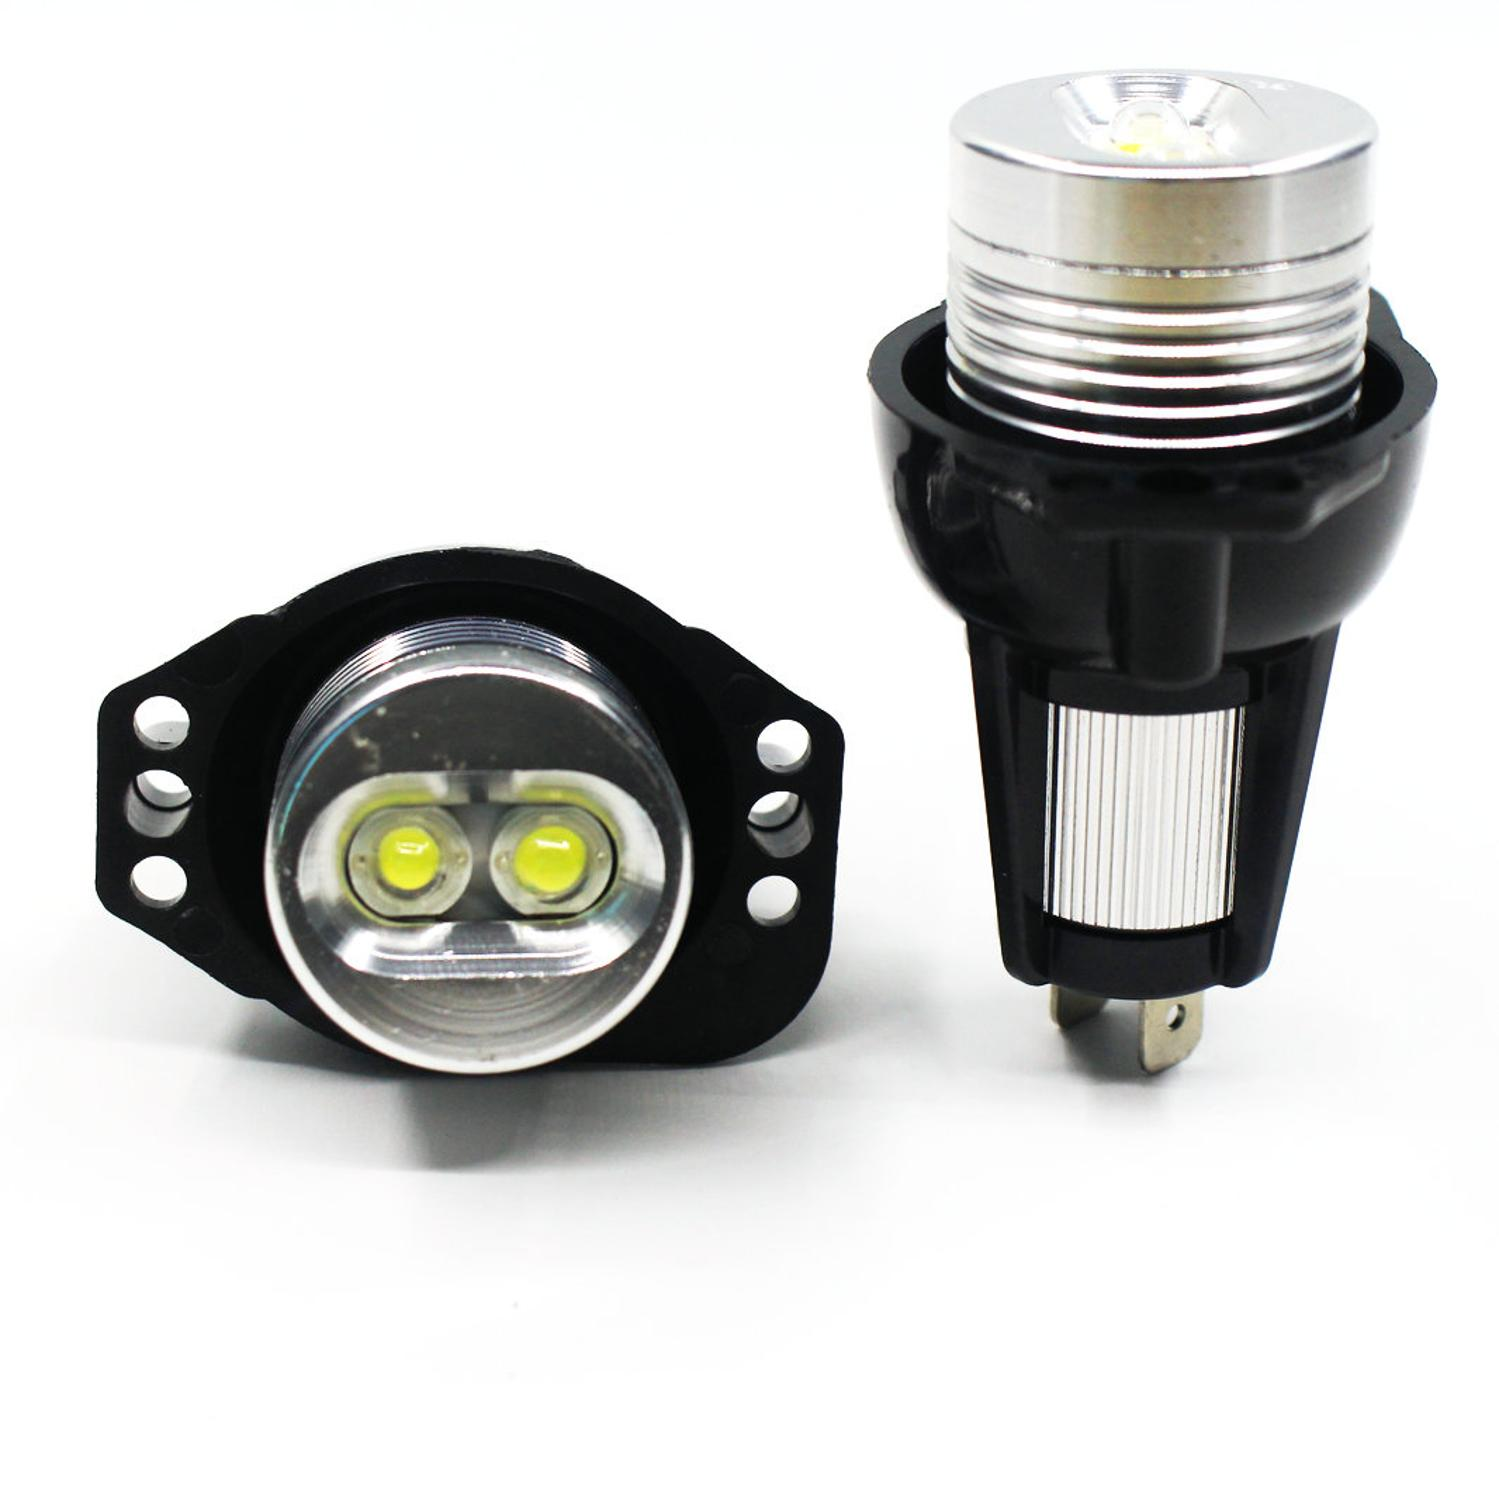 2Pcs 6W 12V LED Angel Eyes Lights Bulbs For BMW E90 E91